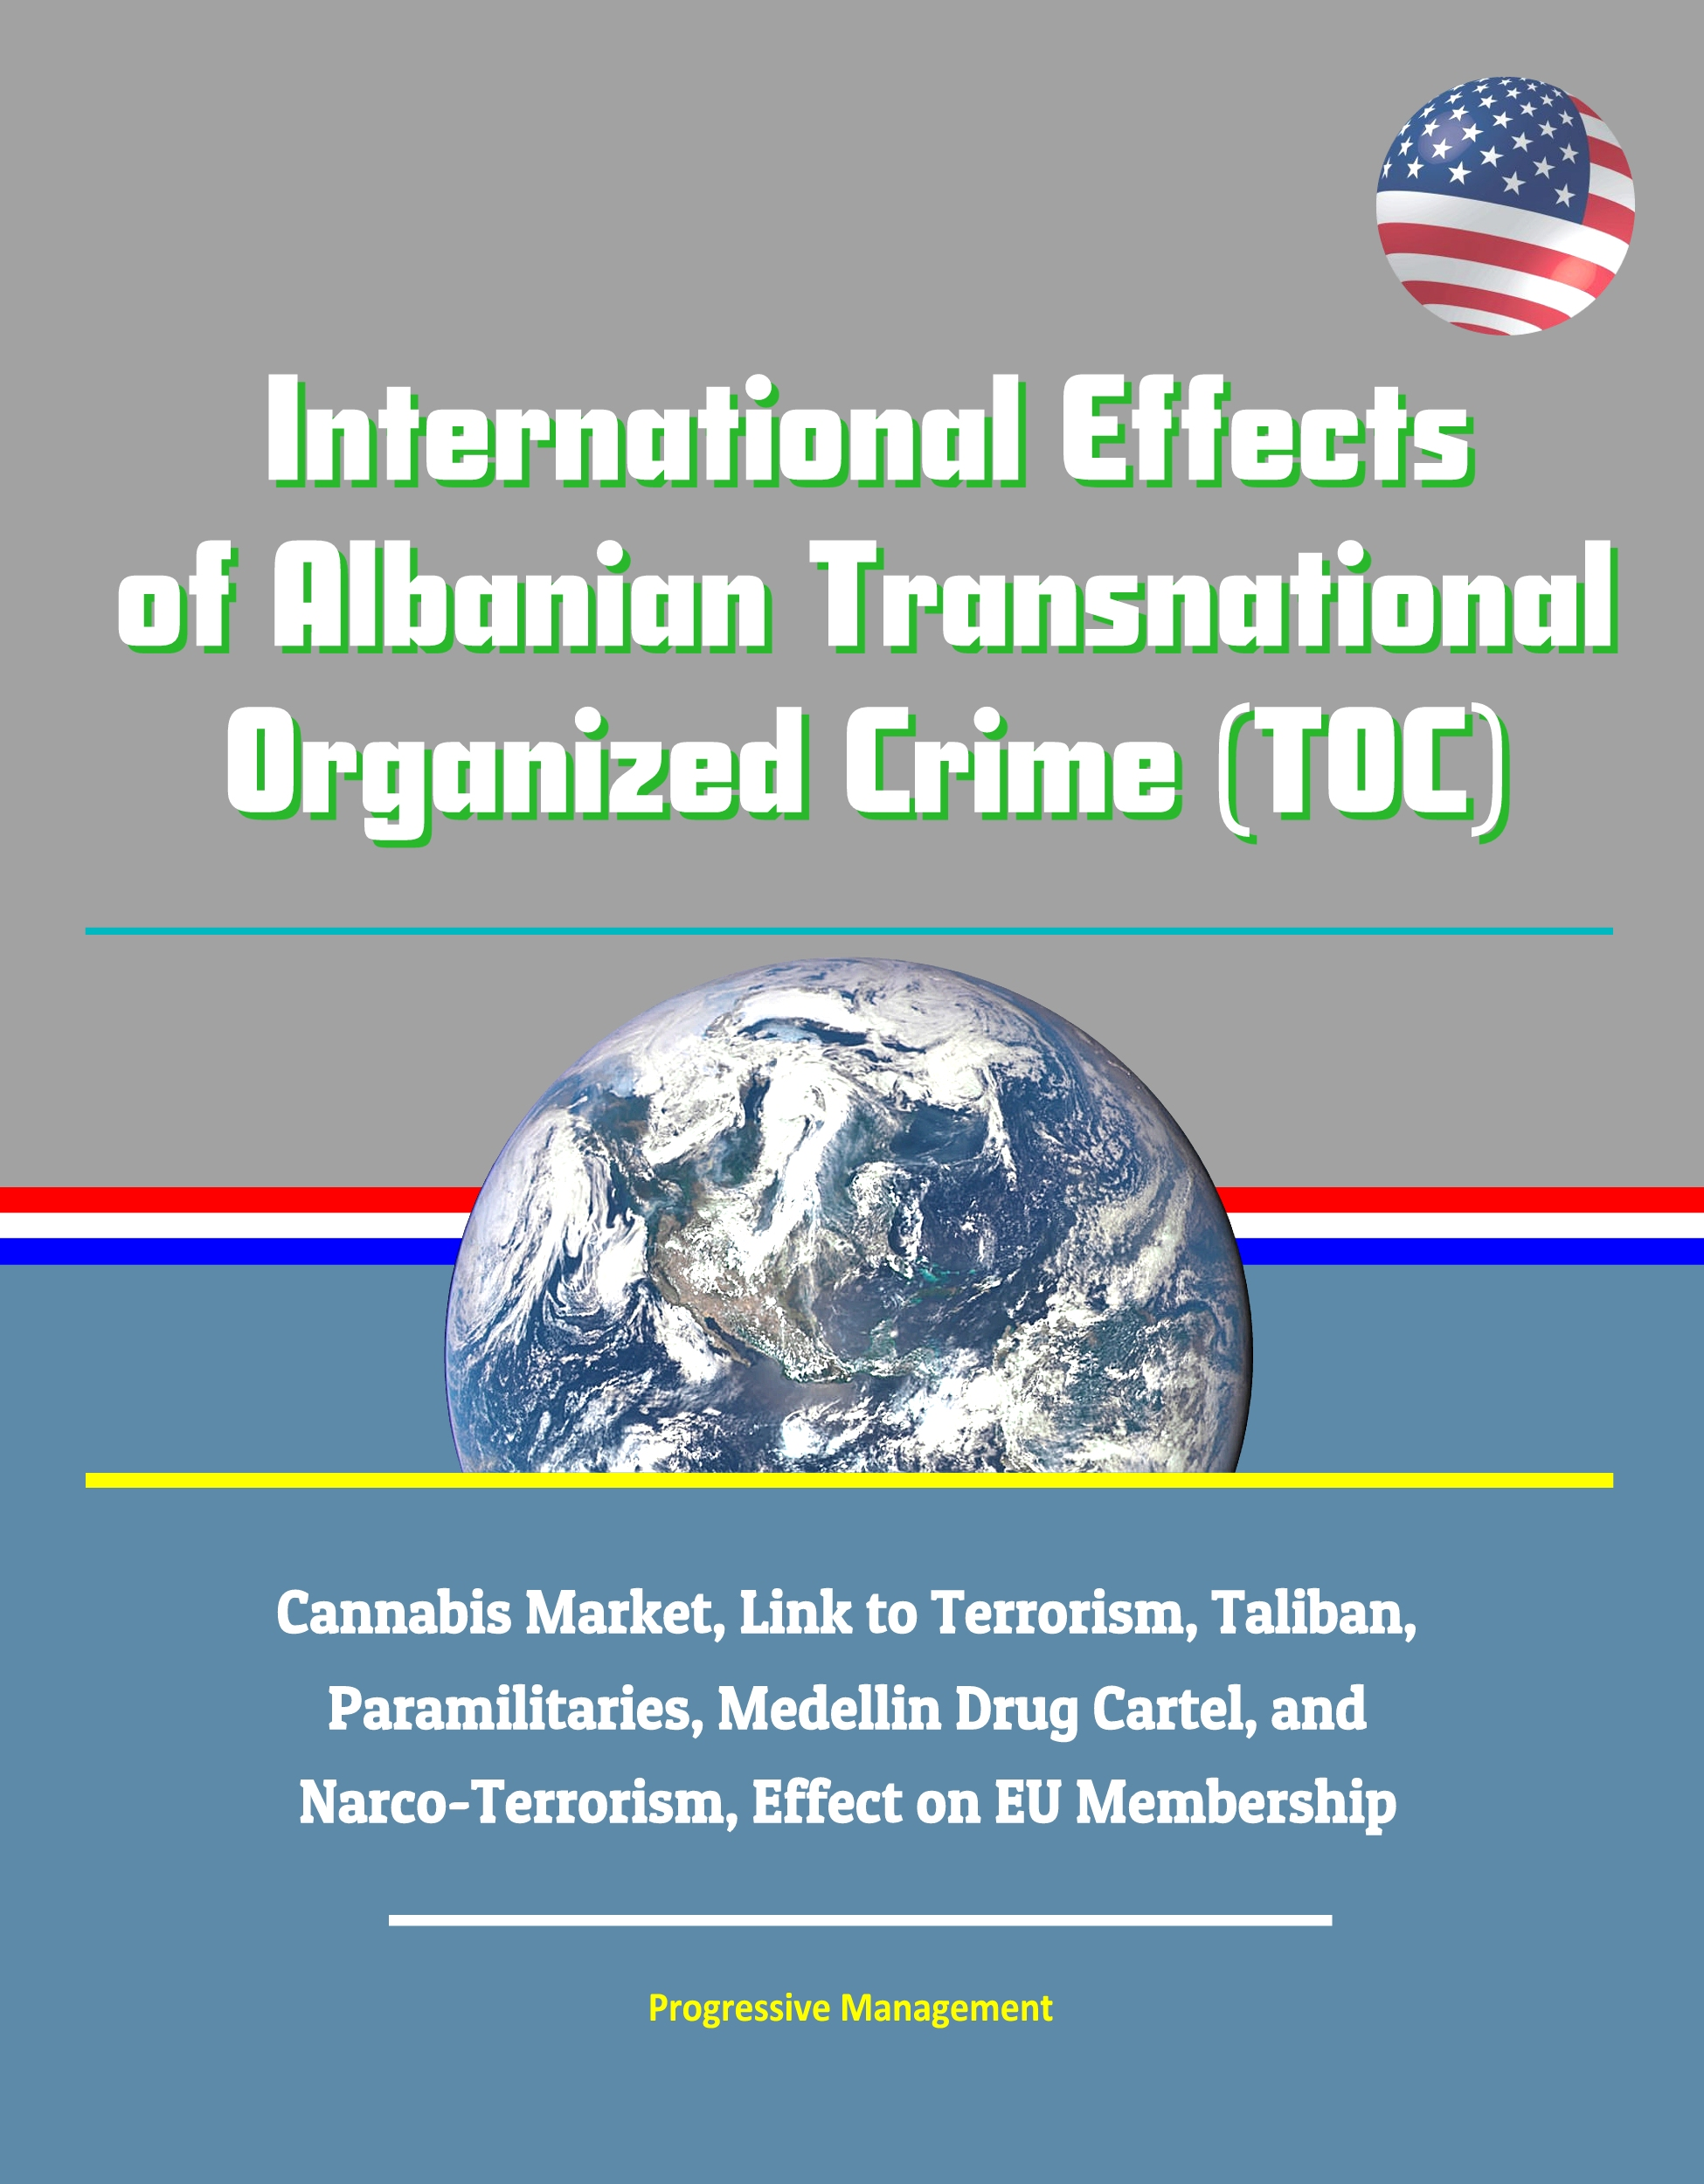 International Effects of Albanian Transnational Organized Crime (TOC) -  Cannabis Market, Link to Terrorism, Taliban, Paramilitaries, Medellin Drug